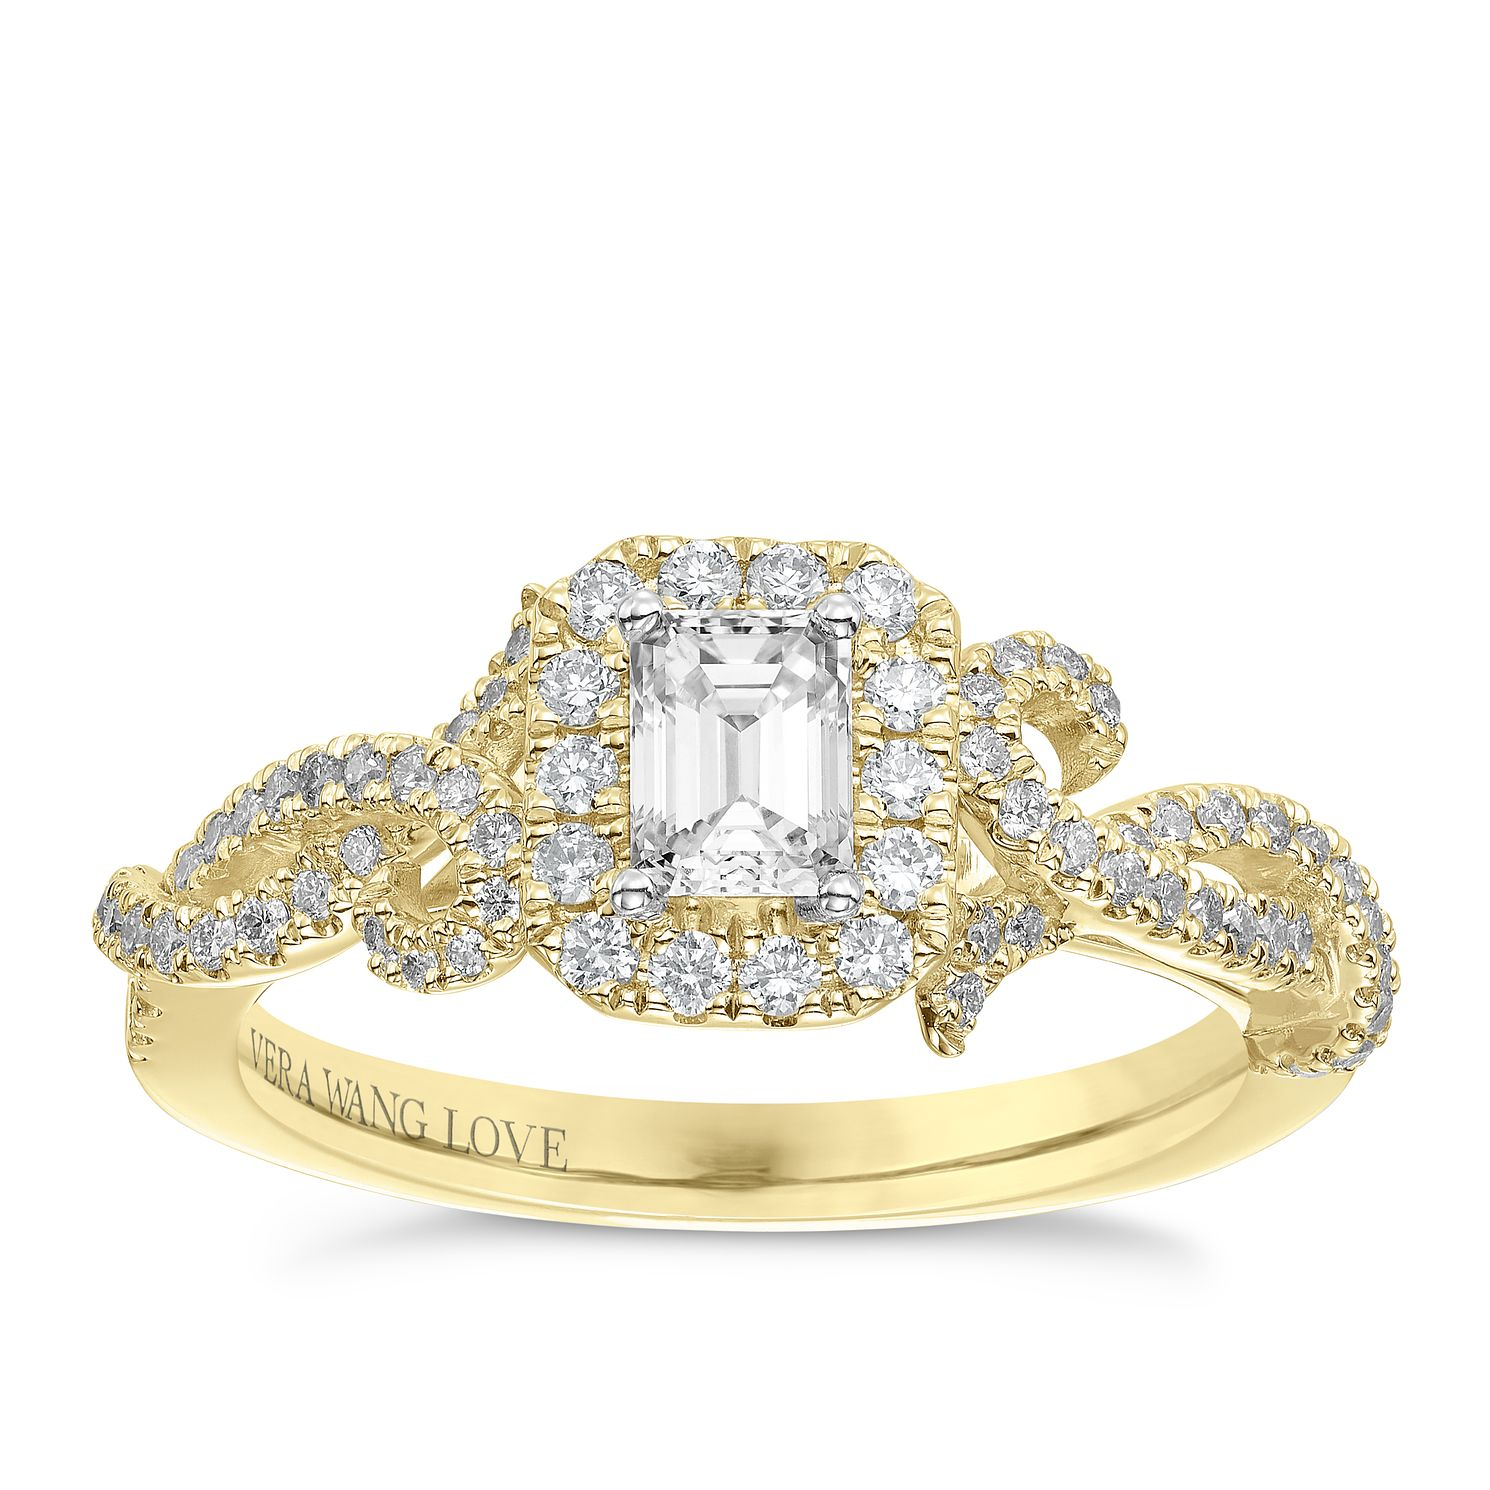 Vera Wang 18ct Yellow Gold 0.70ct Diamond Halo Ring - Product number 6910602